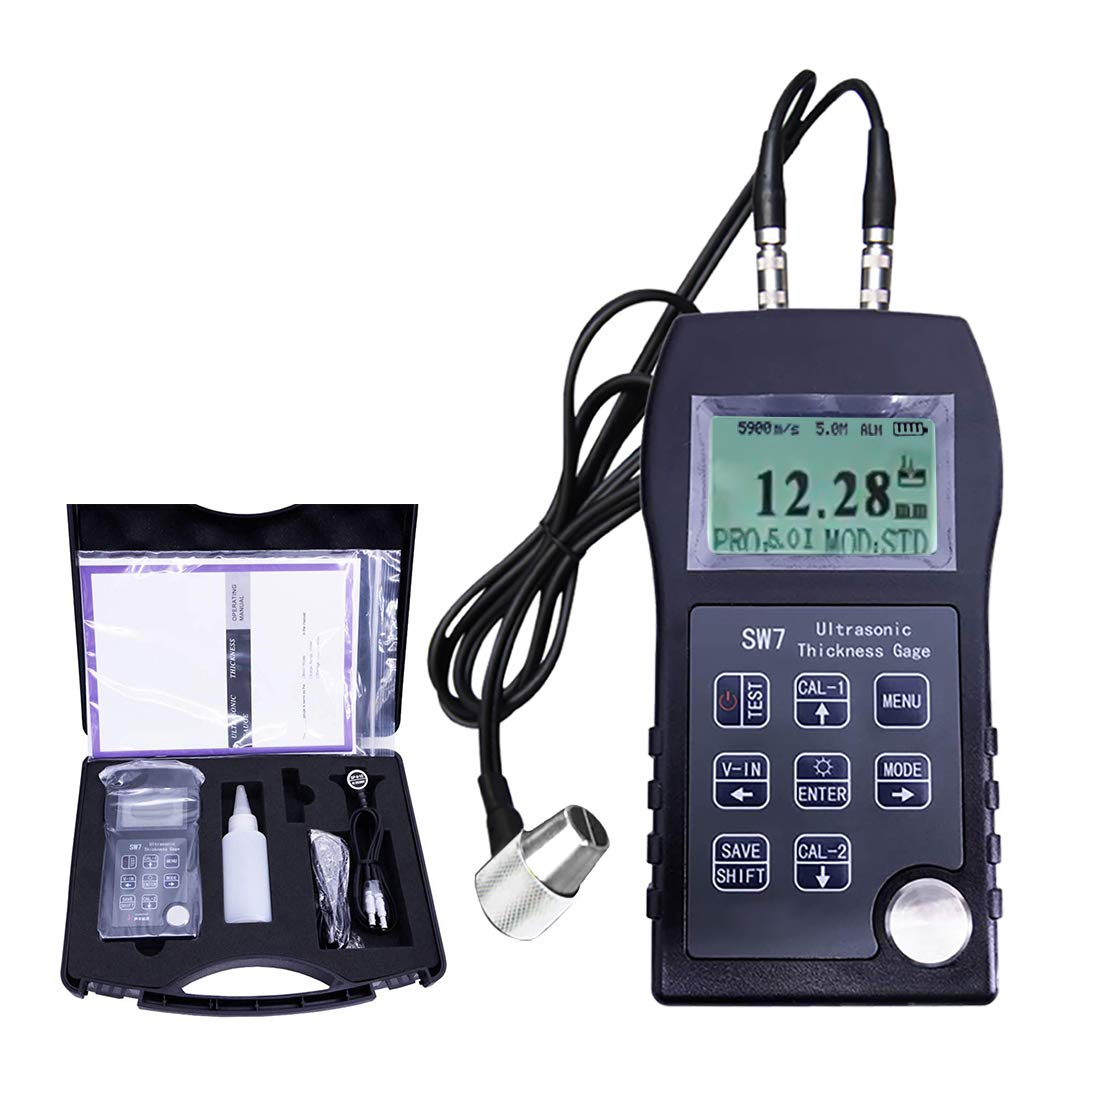 Digital Coating Thickness Gauge 3〜25Mm Portable Ultrasonic Plastic Thickness Tester Metal Pipe Thickness Gauge Meter with Coating Penetration Mode for Polyethylene PVC Etc